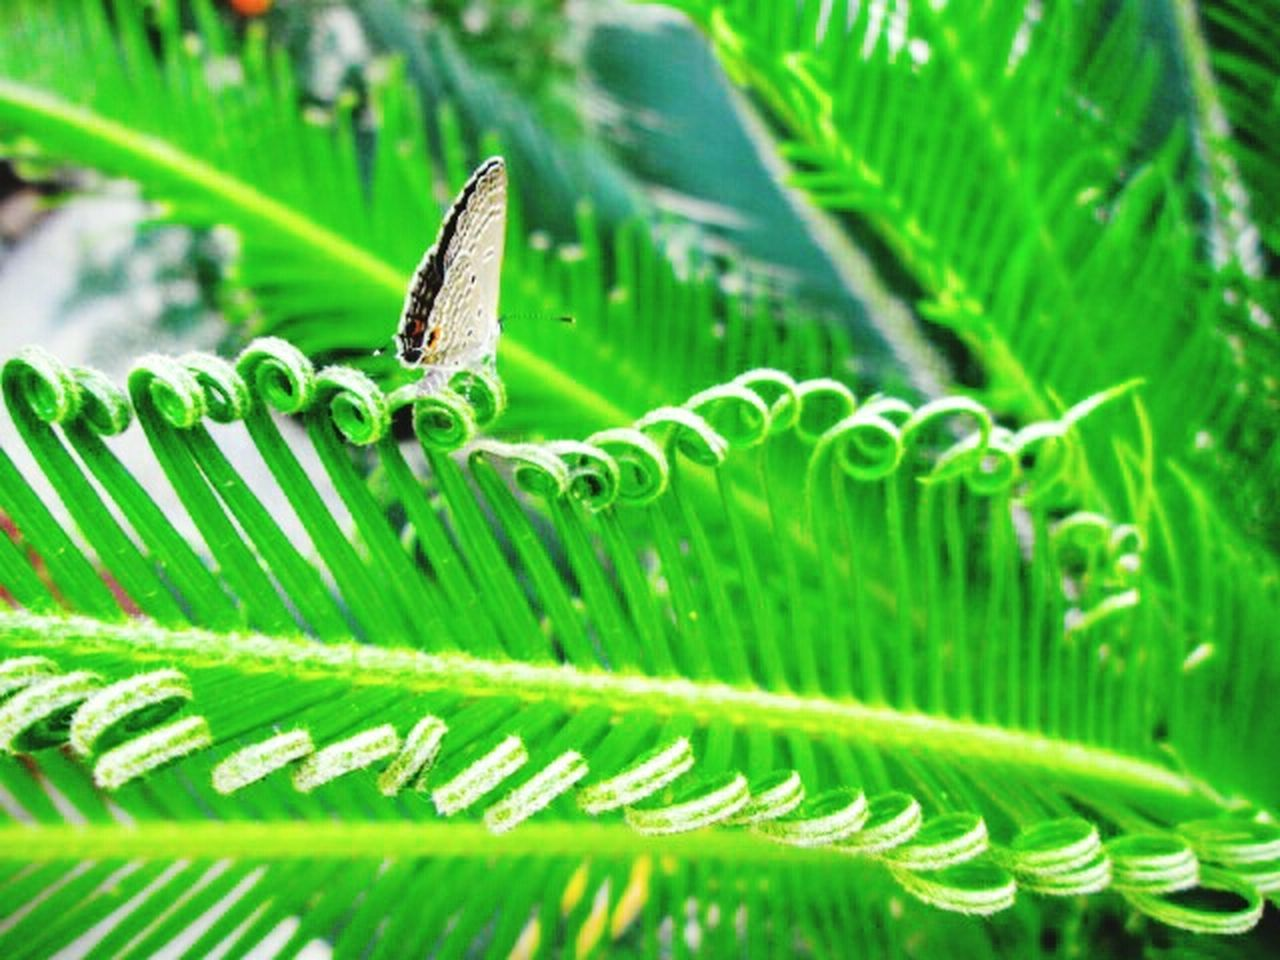 green color, leaf, growth, plant, nature, frond, close-up, one animal, fern, lush foliage, no people, day, animal themes, animals in the wild, beauty in nature, outdoors, freshness, animal wildlife, backgrounds, fragility, banana leaf, grass, flower